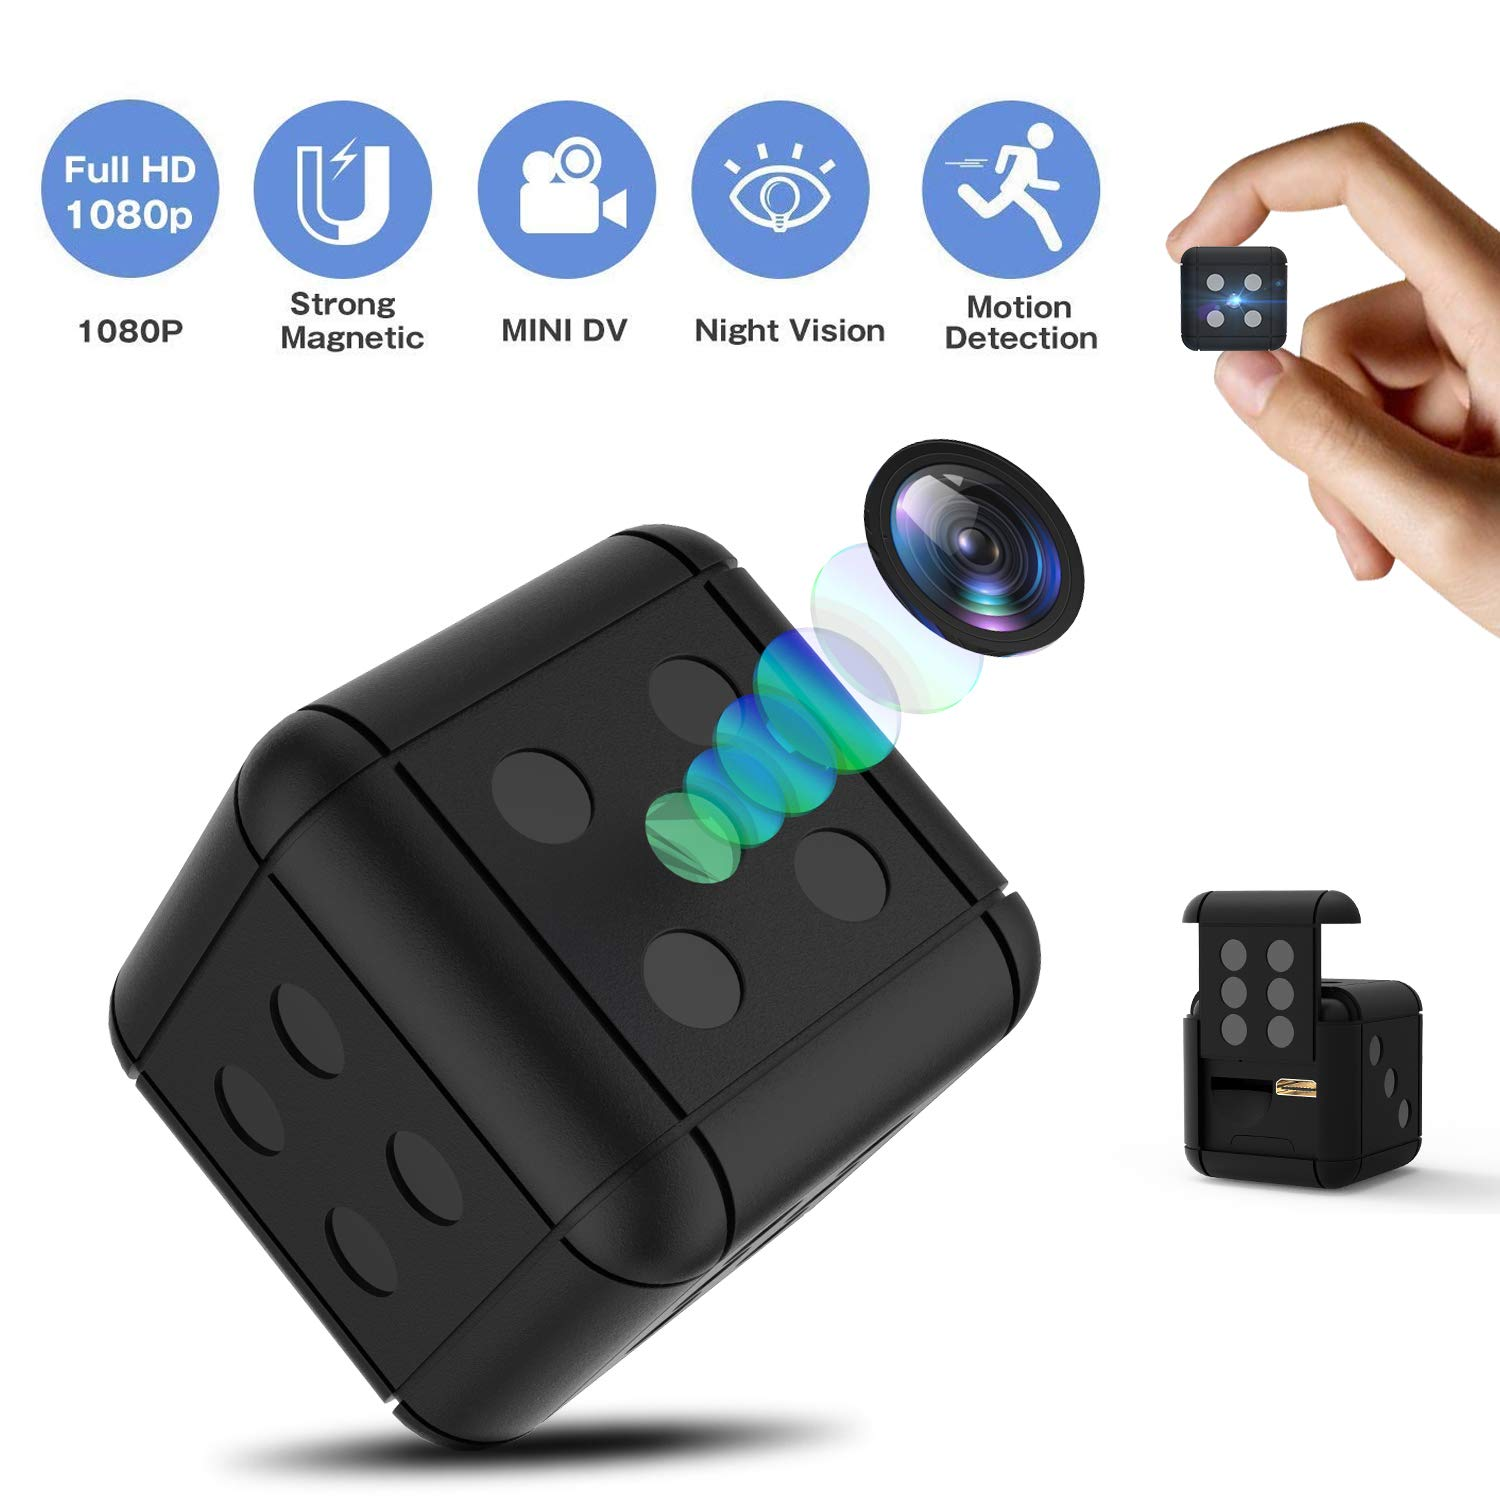 Hidden Camera Spy Camera Mini camera, HD 1080P Small Camera Dice Shape Night Vision Camera Not Gray Restore Live Color, Indoor Outdoor Video Recorder Nanny Cam with Motion Detection Magnet Adsorption